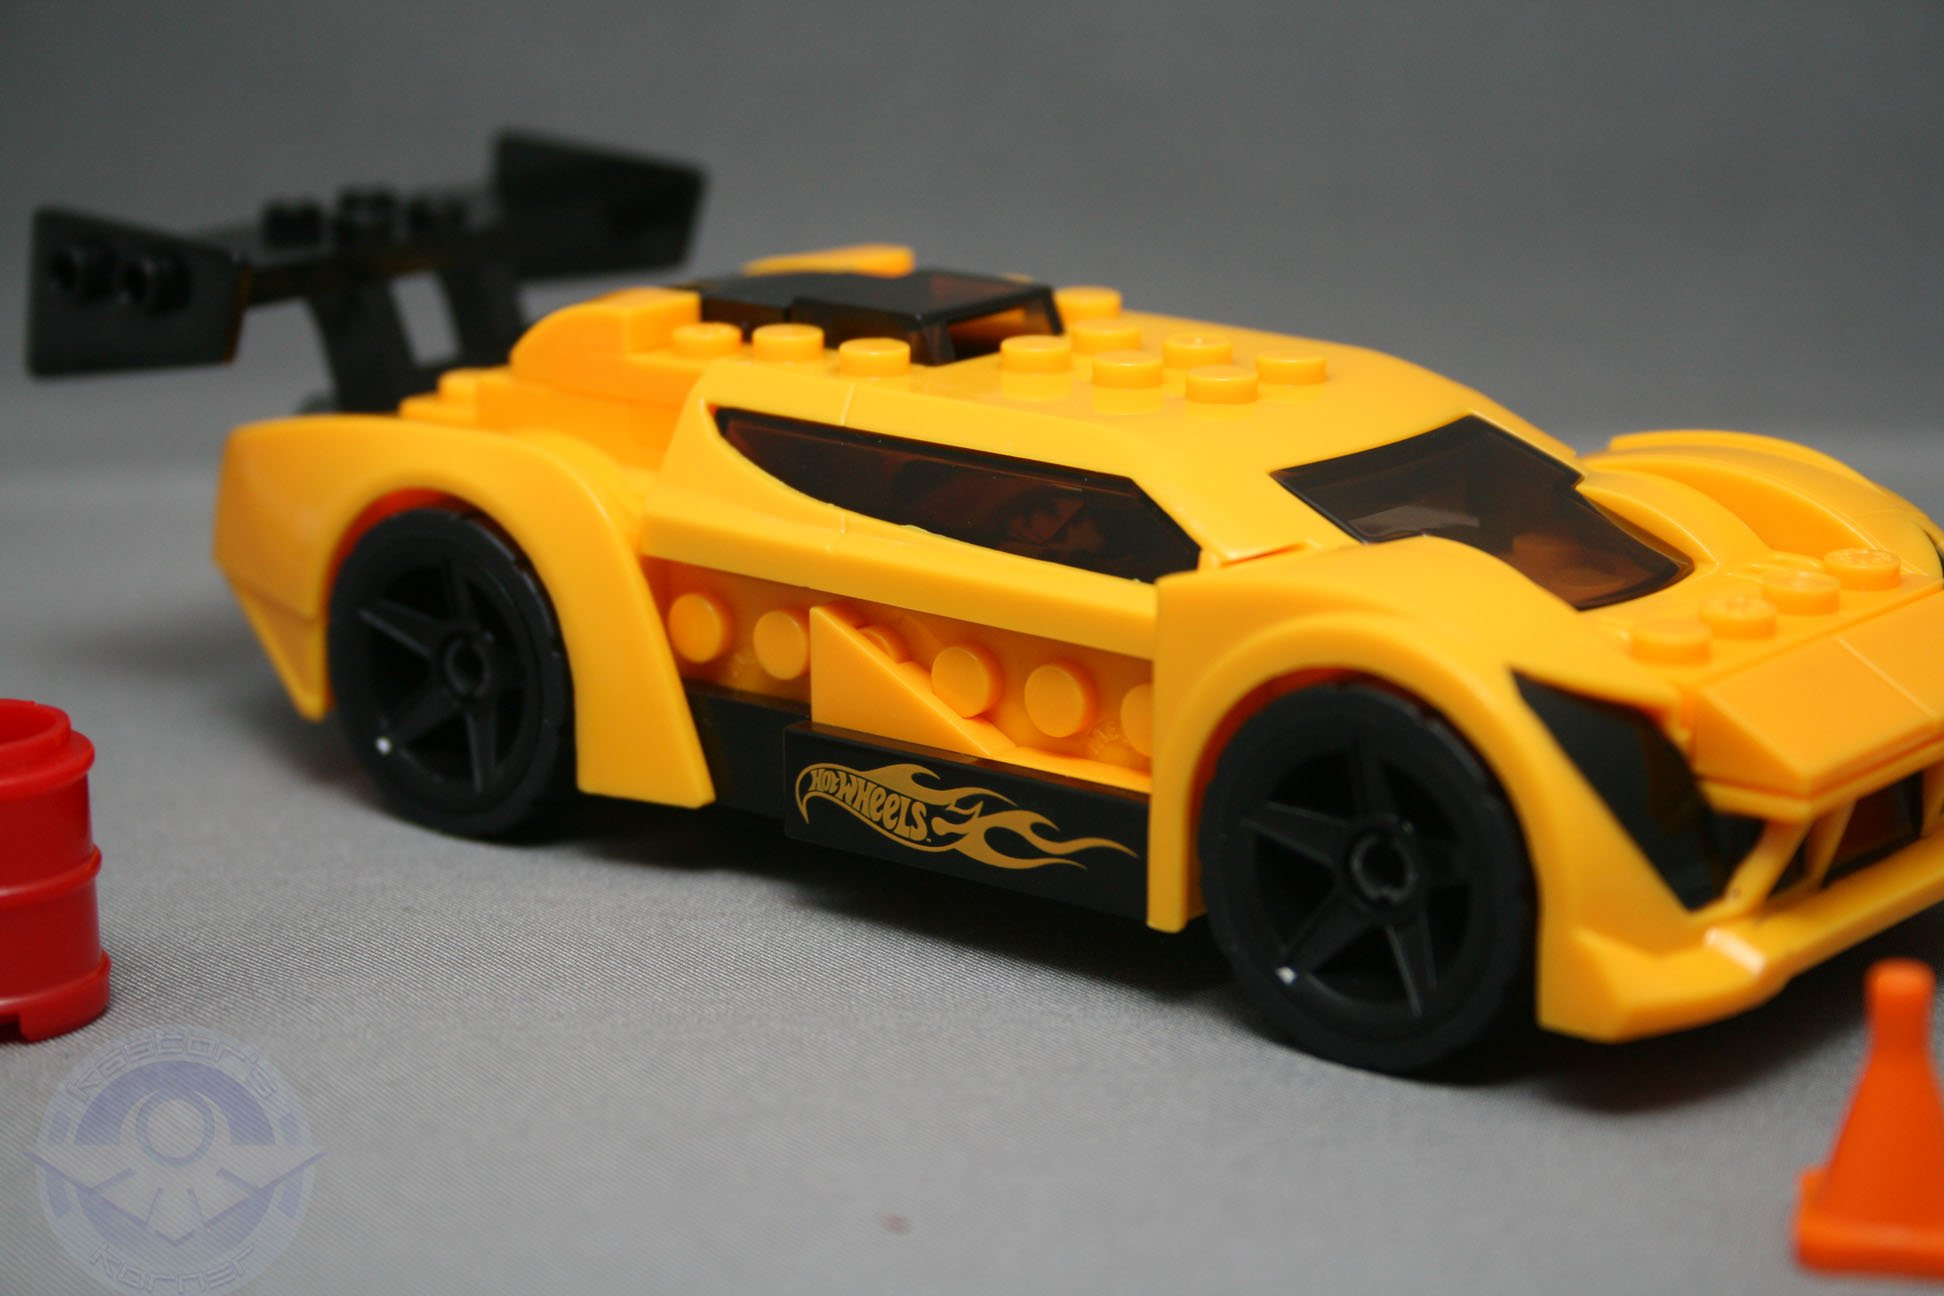 HOT-WHEELS rod rods toy toys race racing hot wheels lego